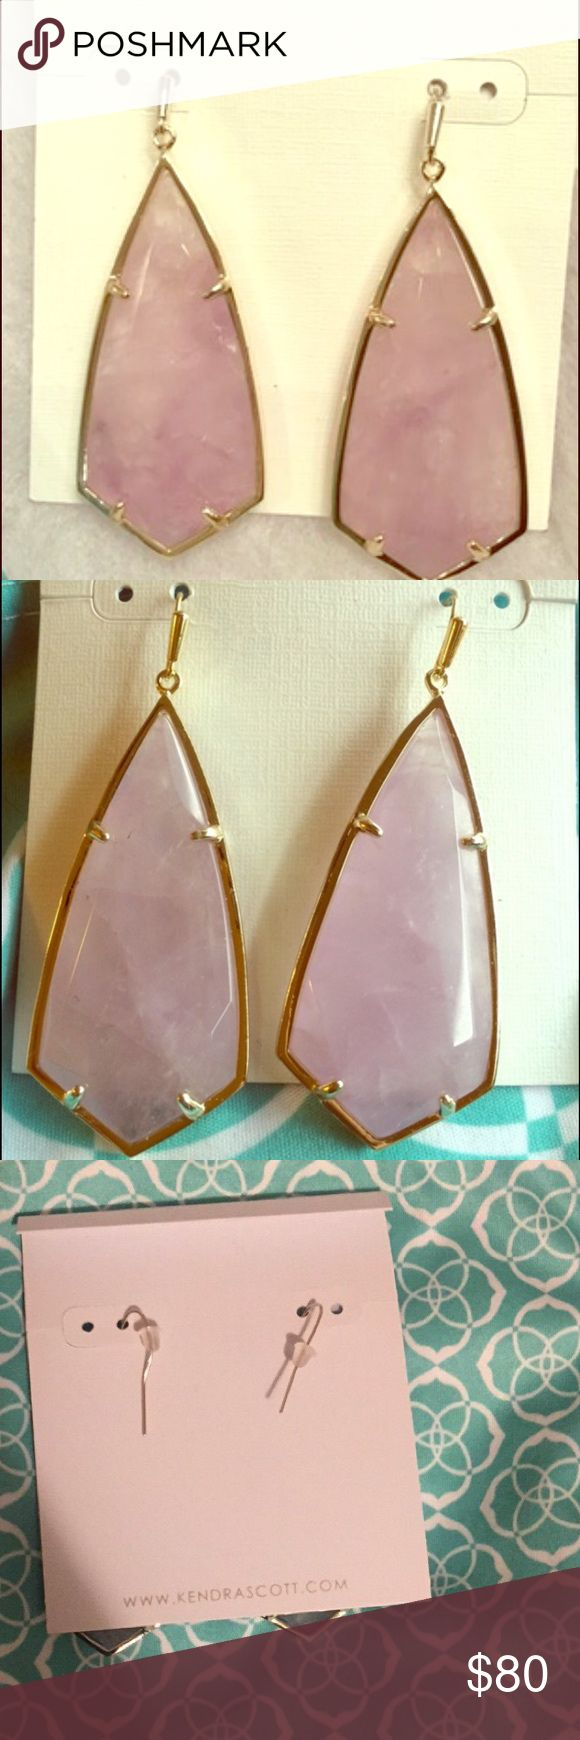 """Authentic Kendra Scott Caroline Earrings. Authentic Kendra Scott Caroline Earrings. These are Amethyst stones with gold plated finish and about 2 1/4"""" drop.  These are brand new never worn and comes with dustbag.  Price tag was missing at time of purchase. Please feel free to ask questions. Kendra Scott Jewelry Earrings"""